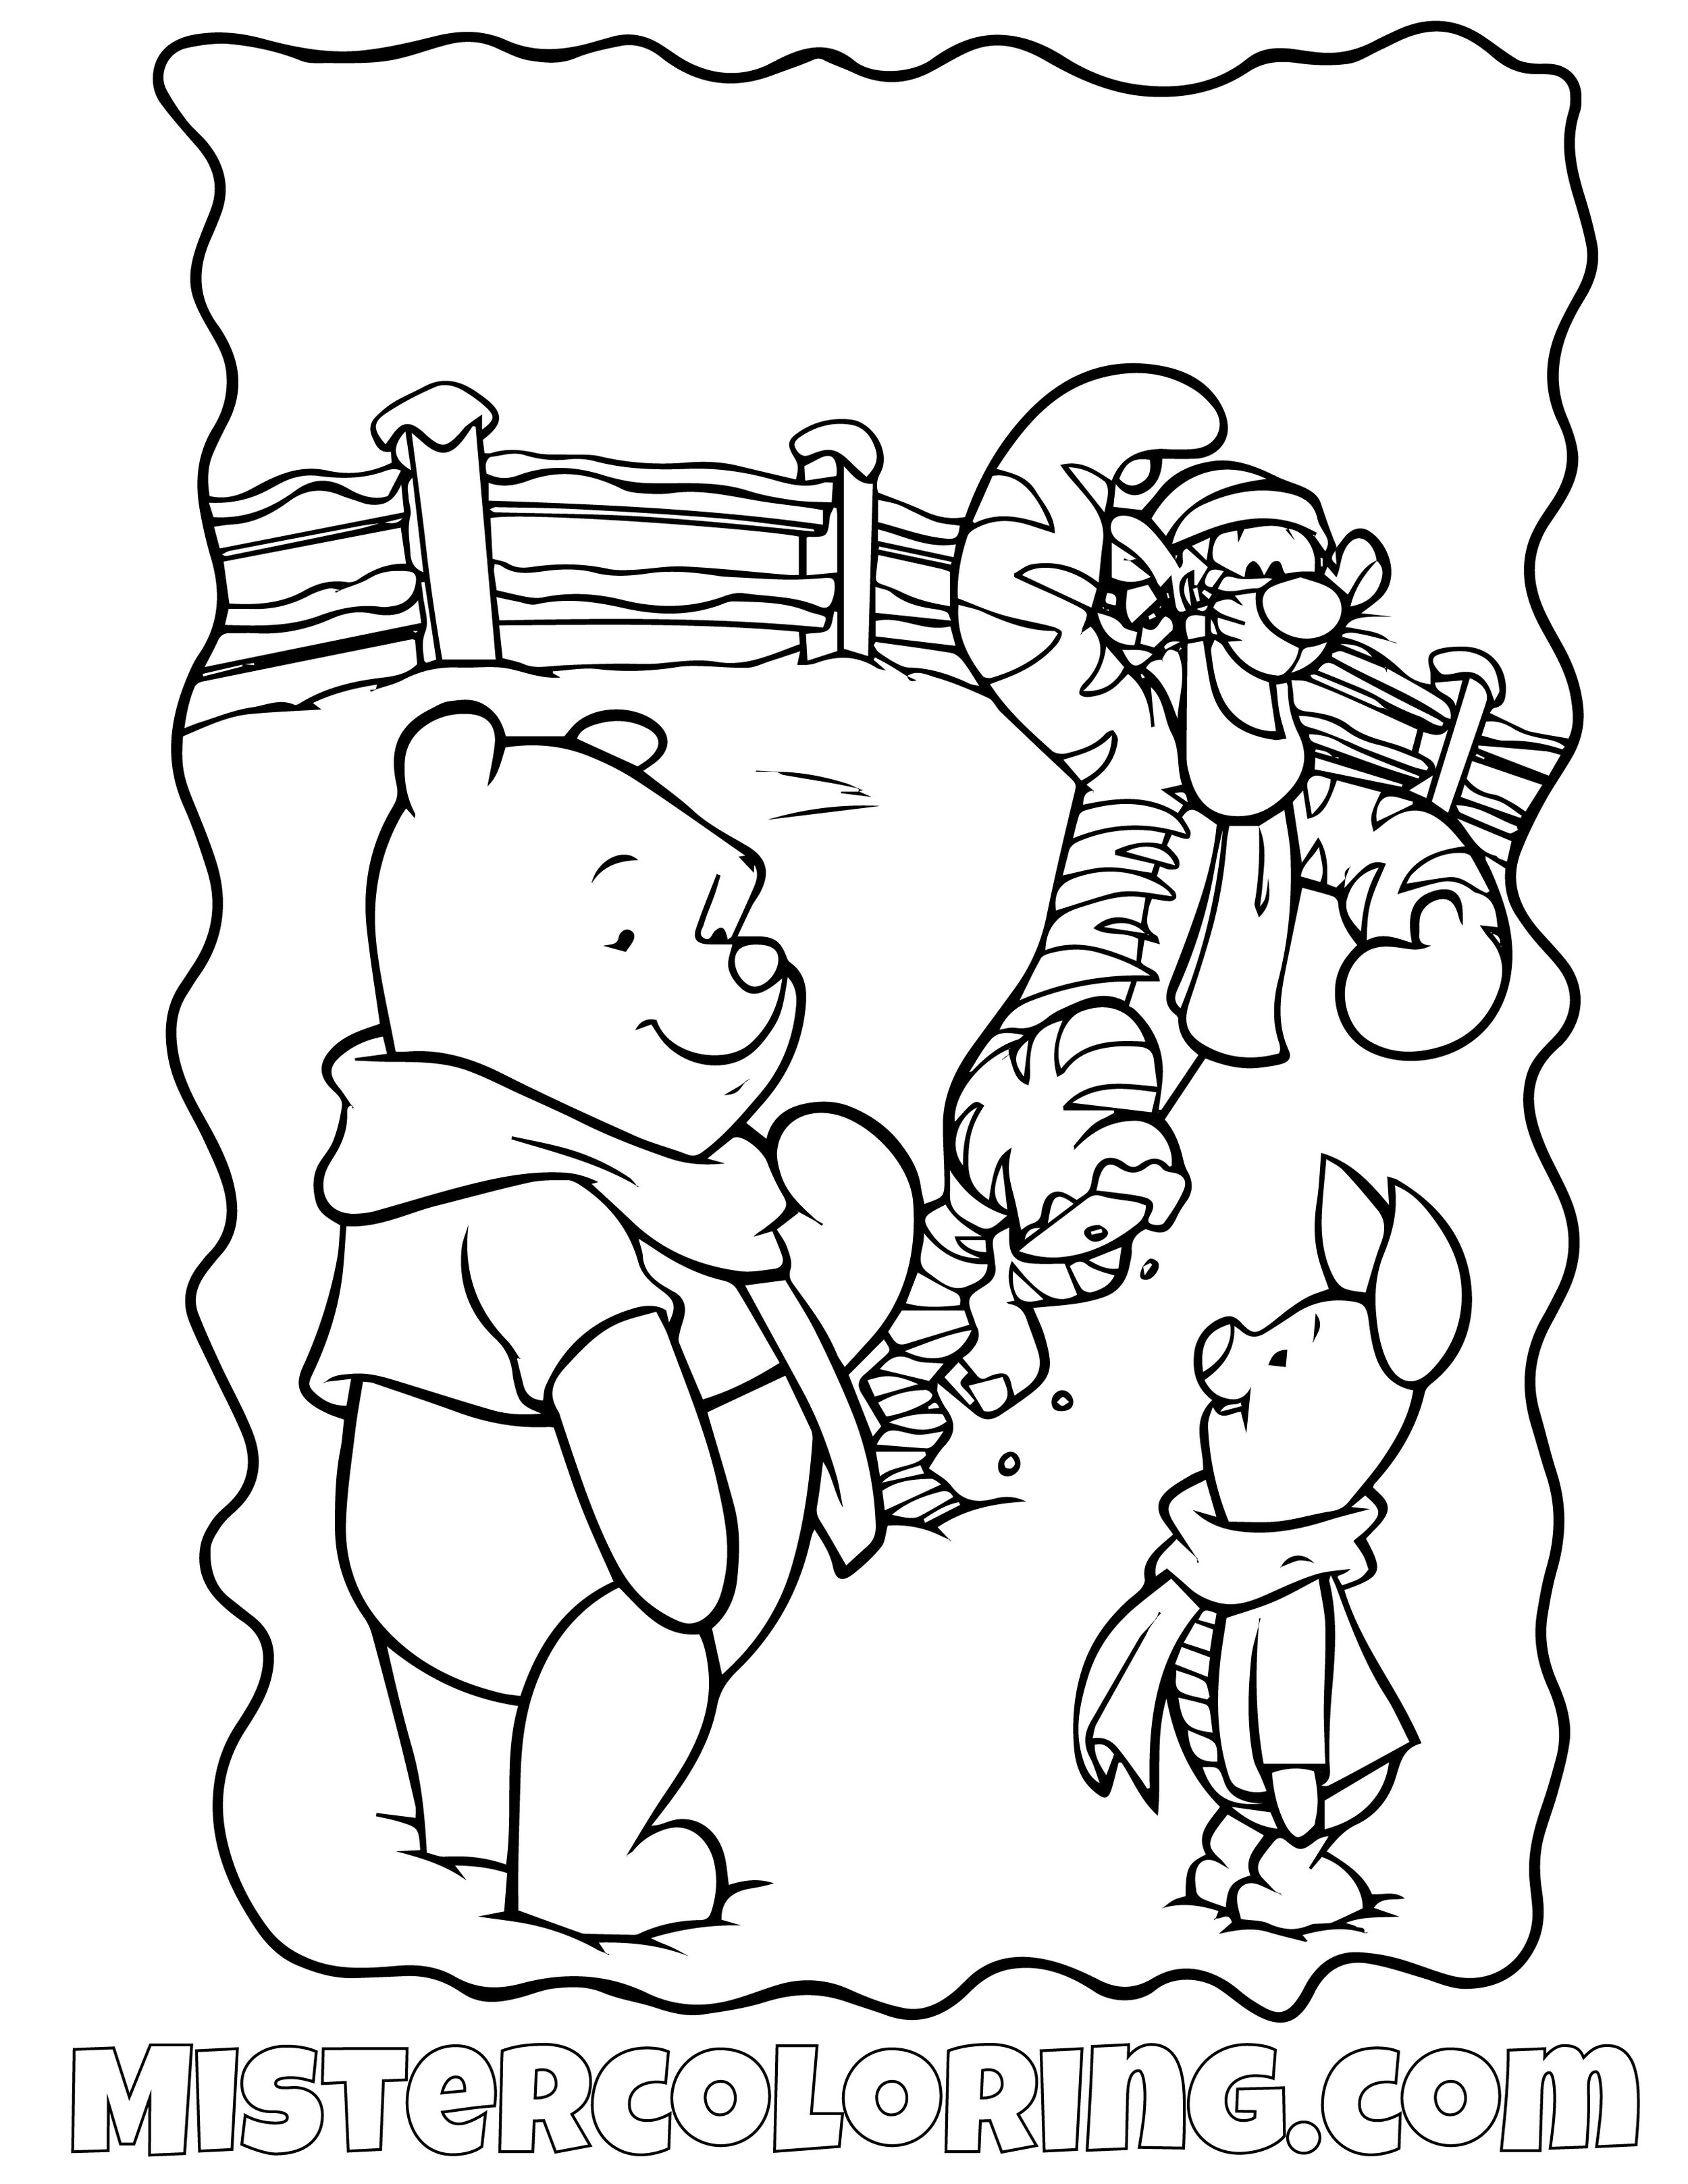 Winnie The Pooh 22 Coloring Page